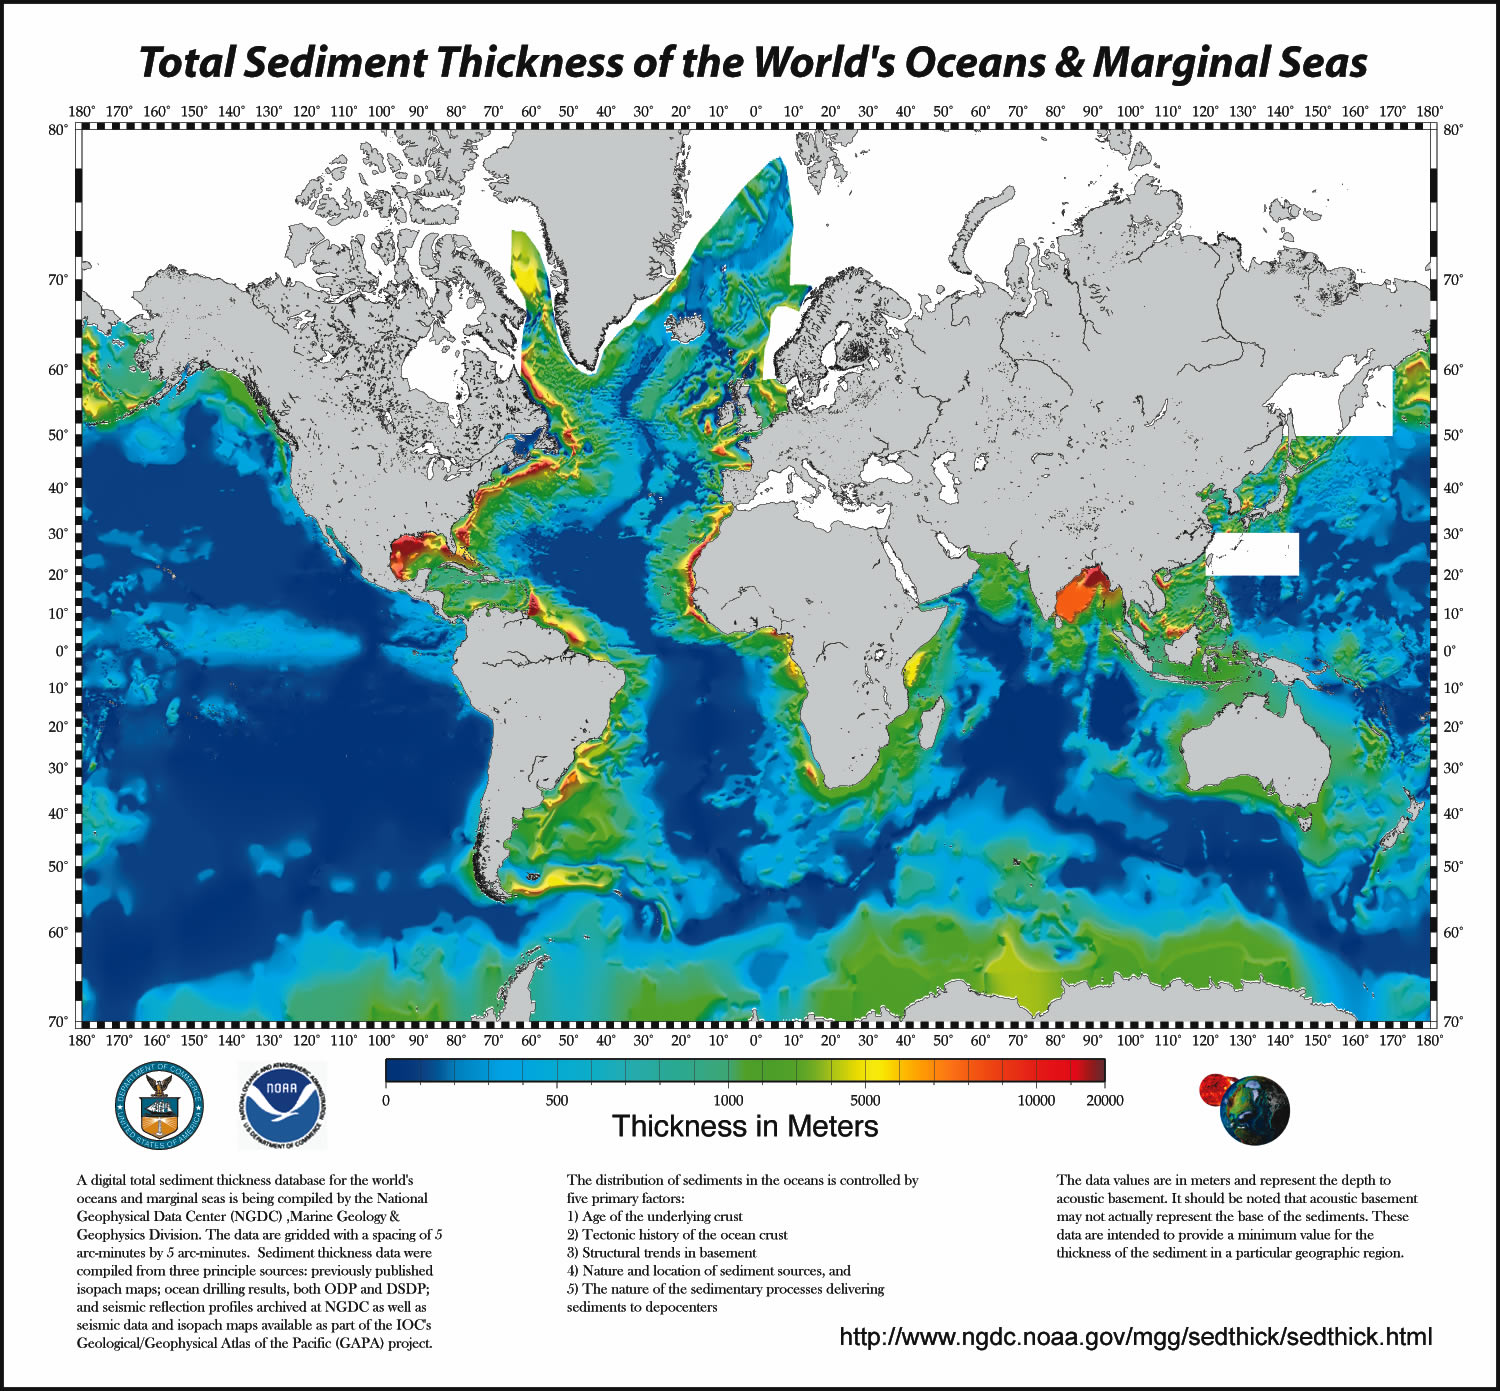 Total Sediment Thickness of the Worlds Oceans and Marginal Seas